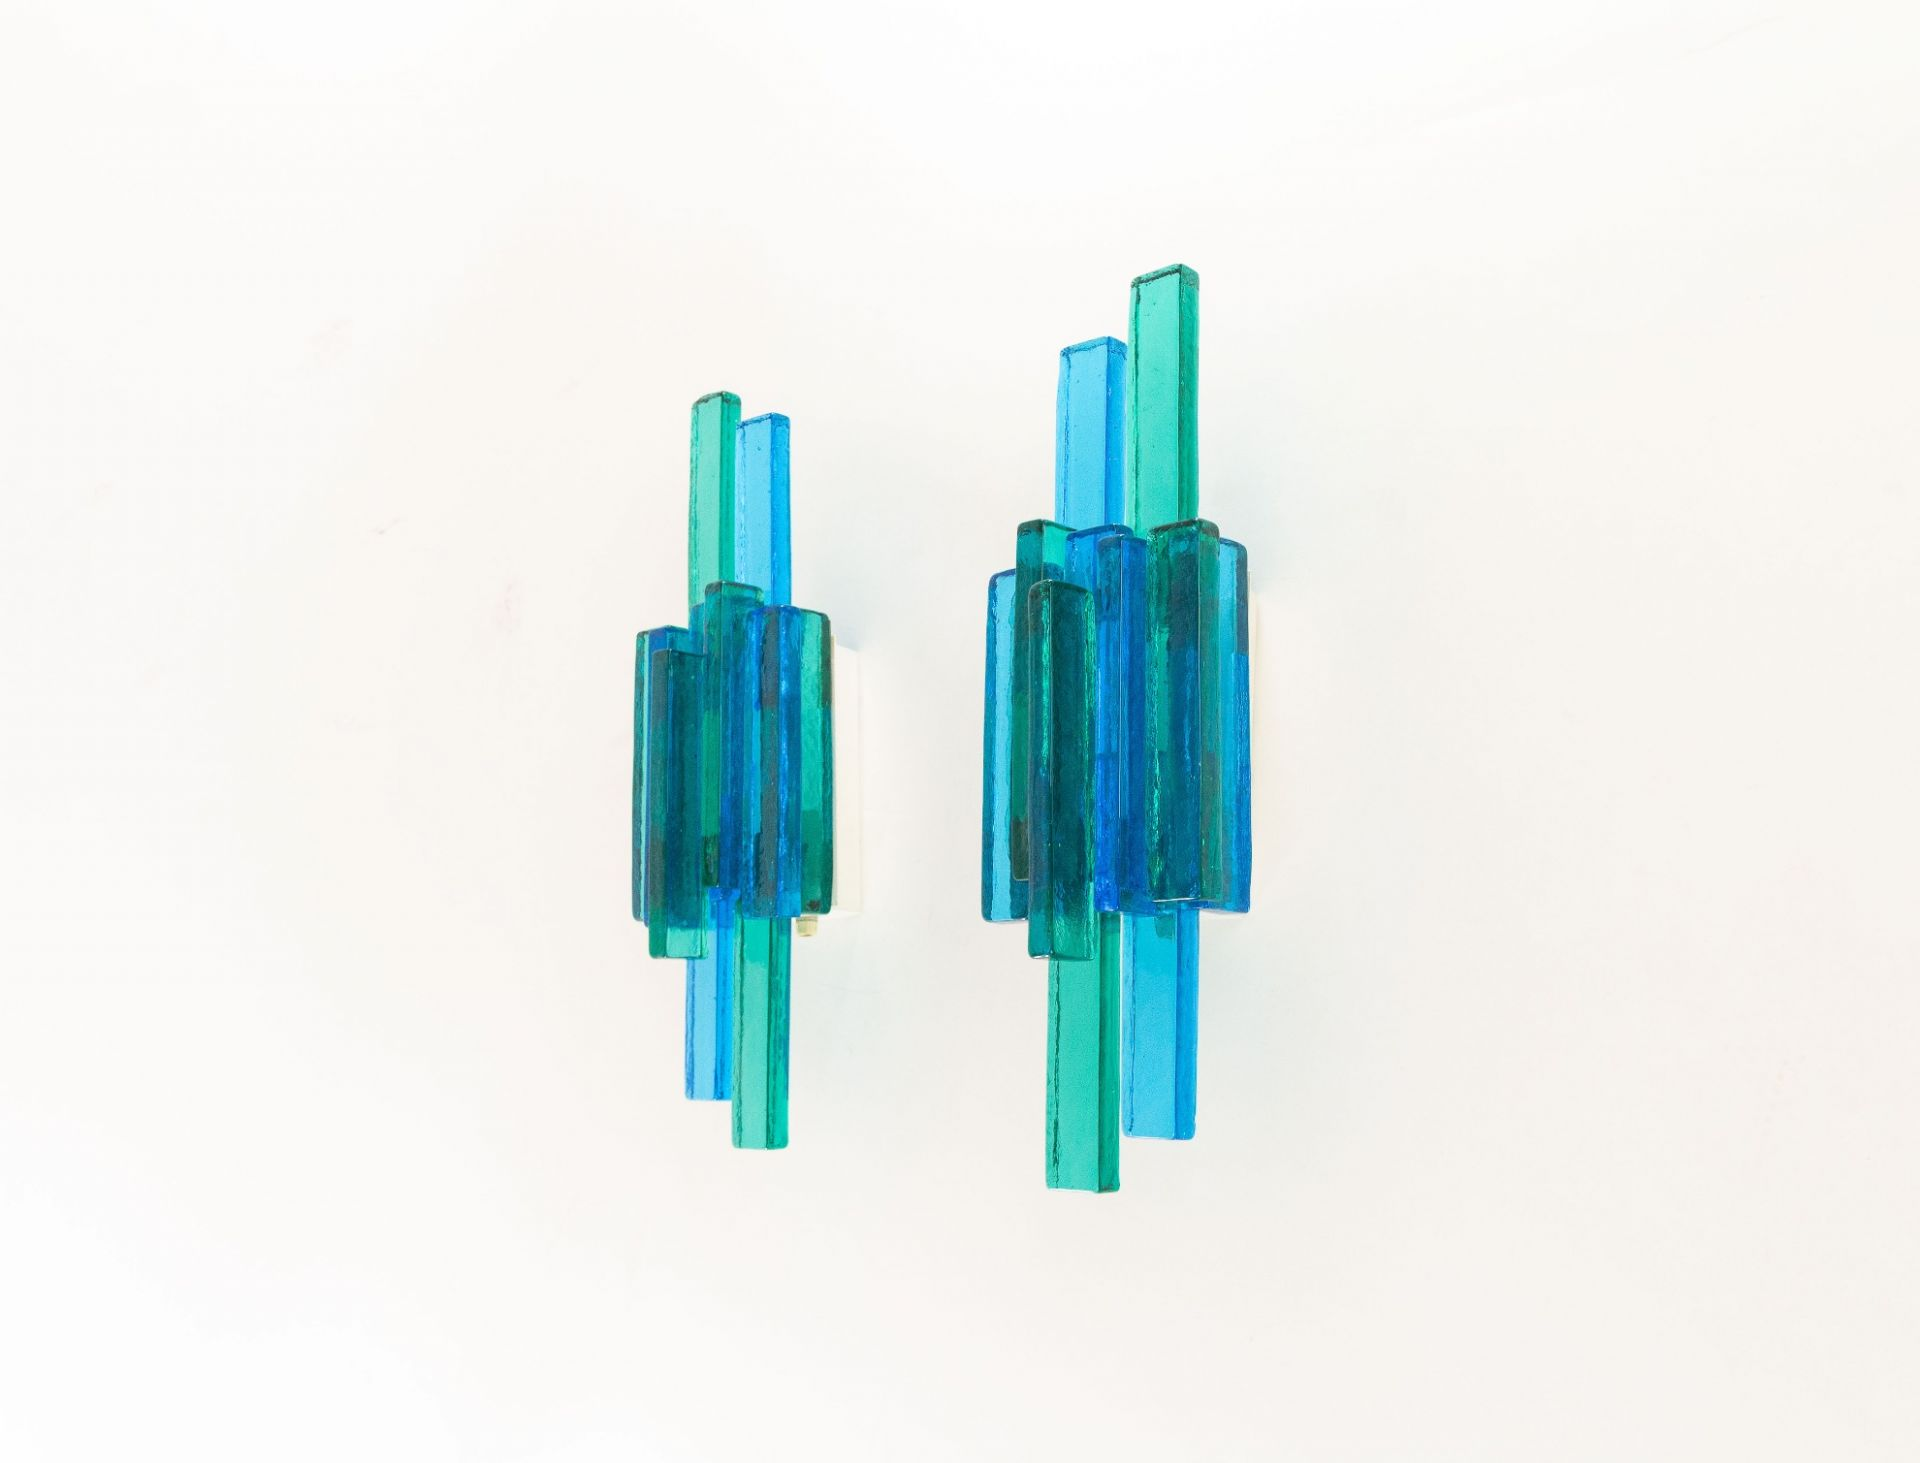 Pair of blue wall lamps designed by Svend Aage Holm Sørensen, 1960s